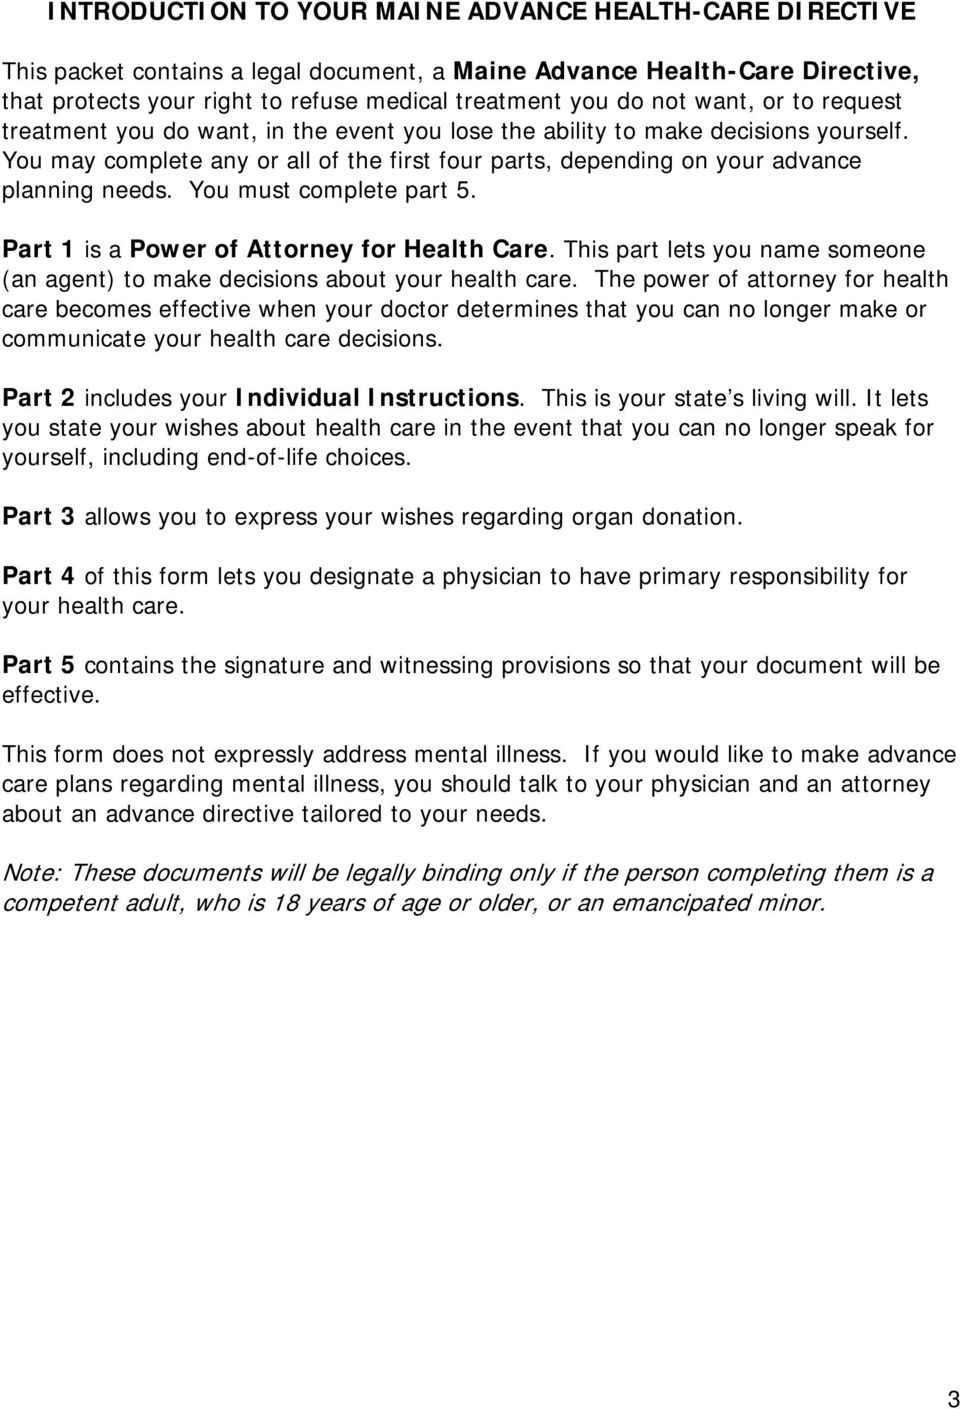 You must complete part 5. Part 1 is a Power of Attorney for Health Care. This part lets you name someone (an agent) to make decisions about your health care.